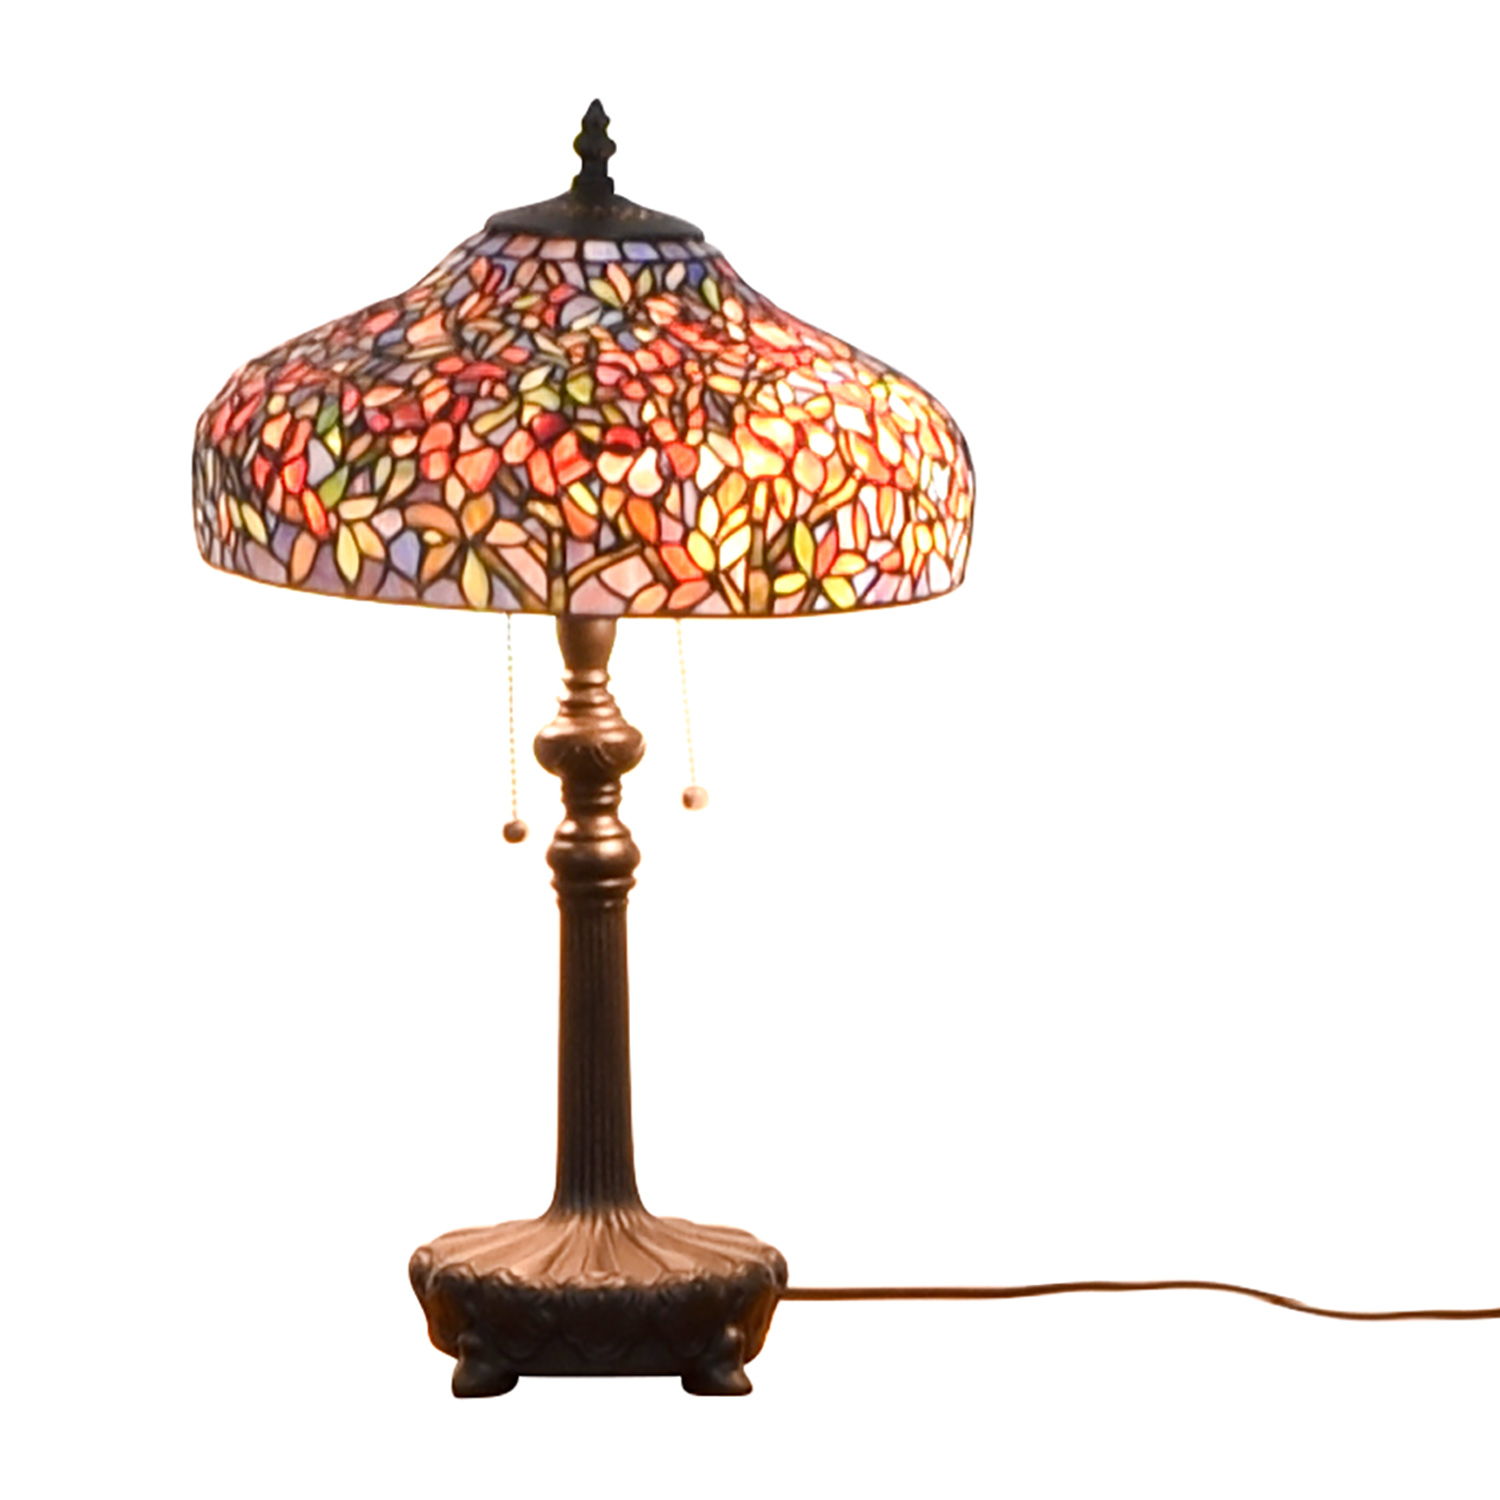 Ouoizel Tiffany-Style Table Lamp Quoizel